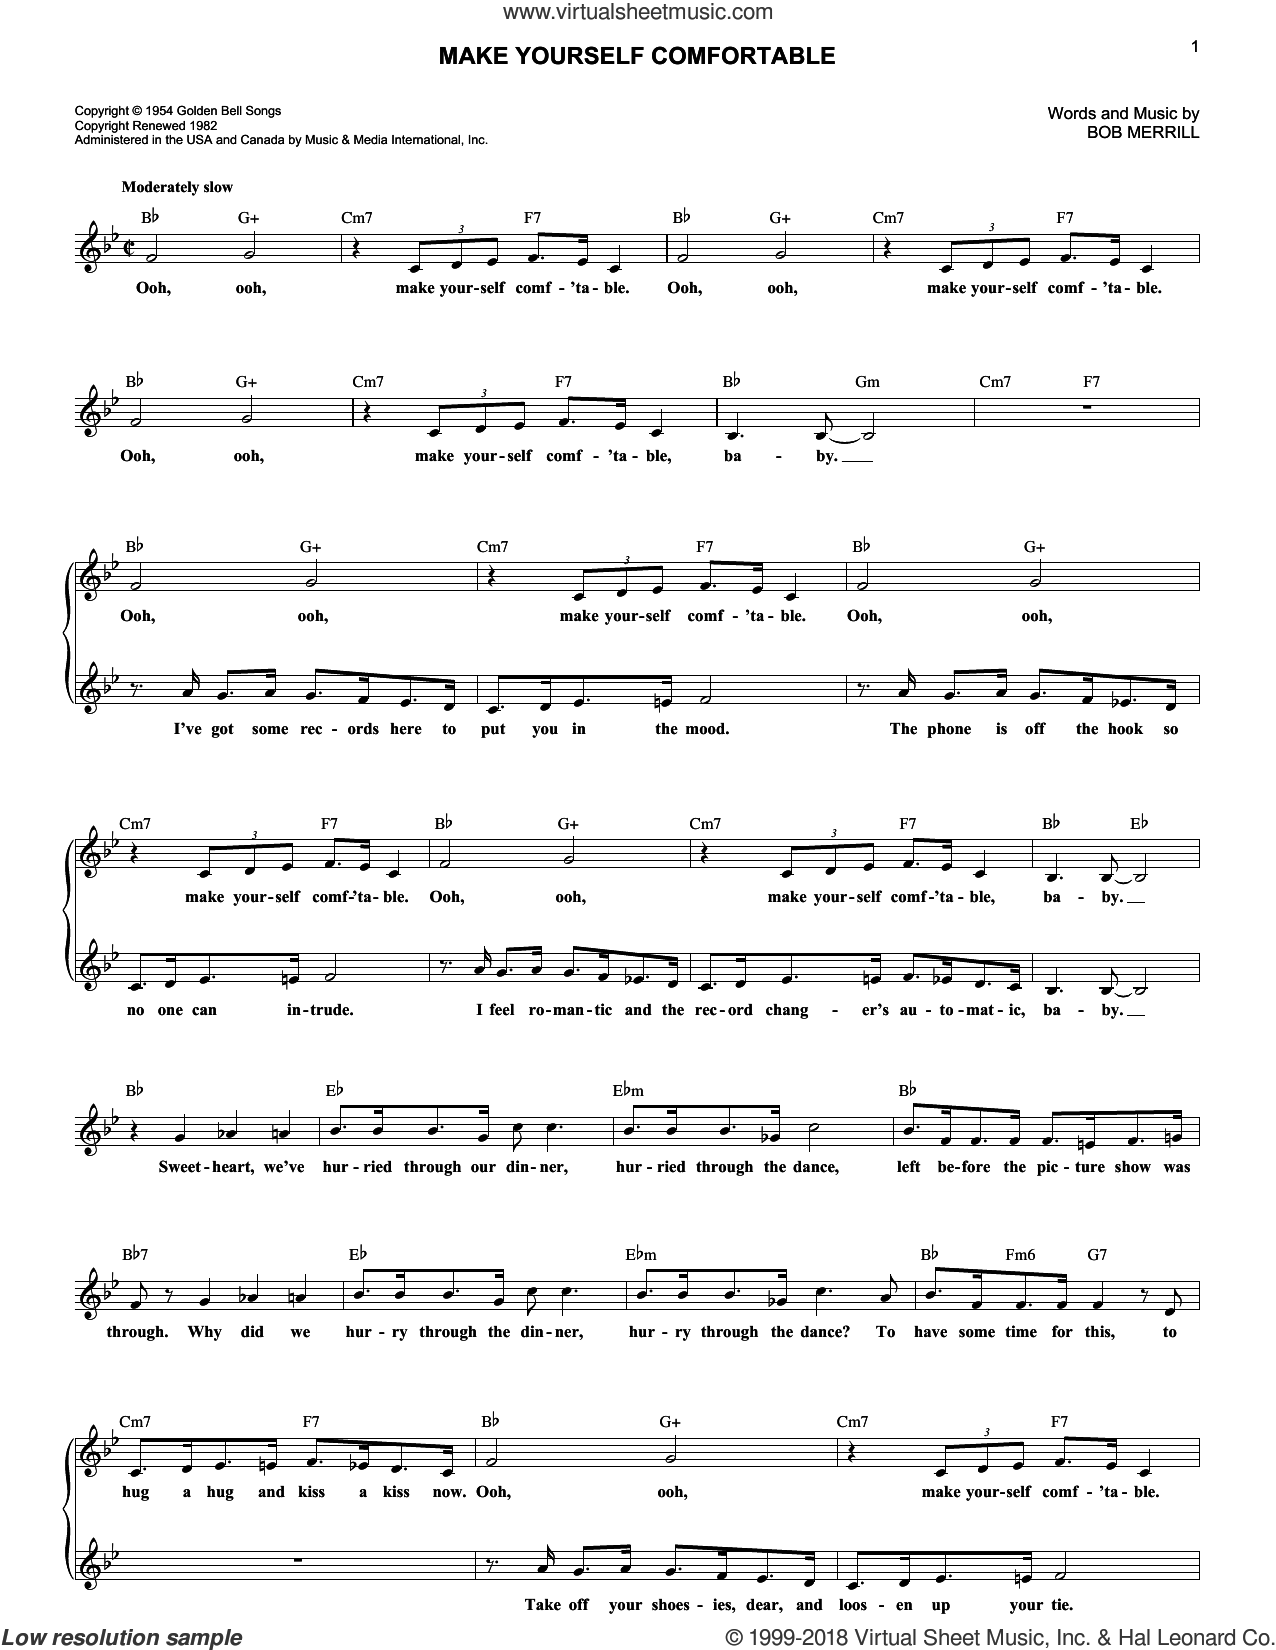 Make Yourself Comfortable sheet music for voice and other instruments (fake book) by Bob Merrill, intermediate skill level